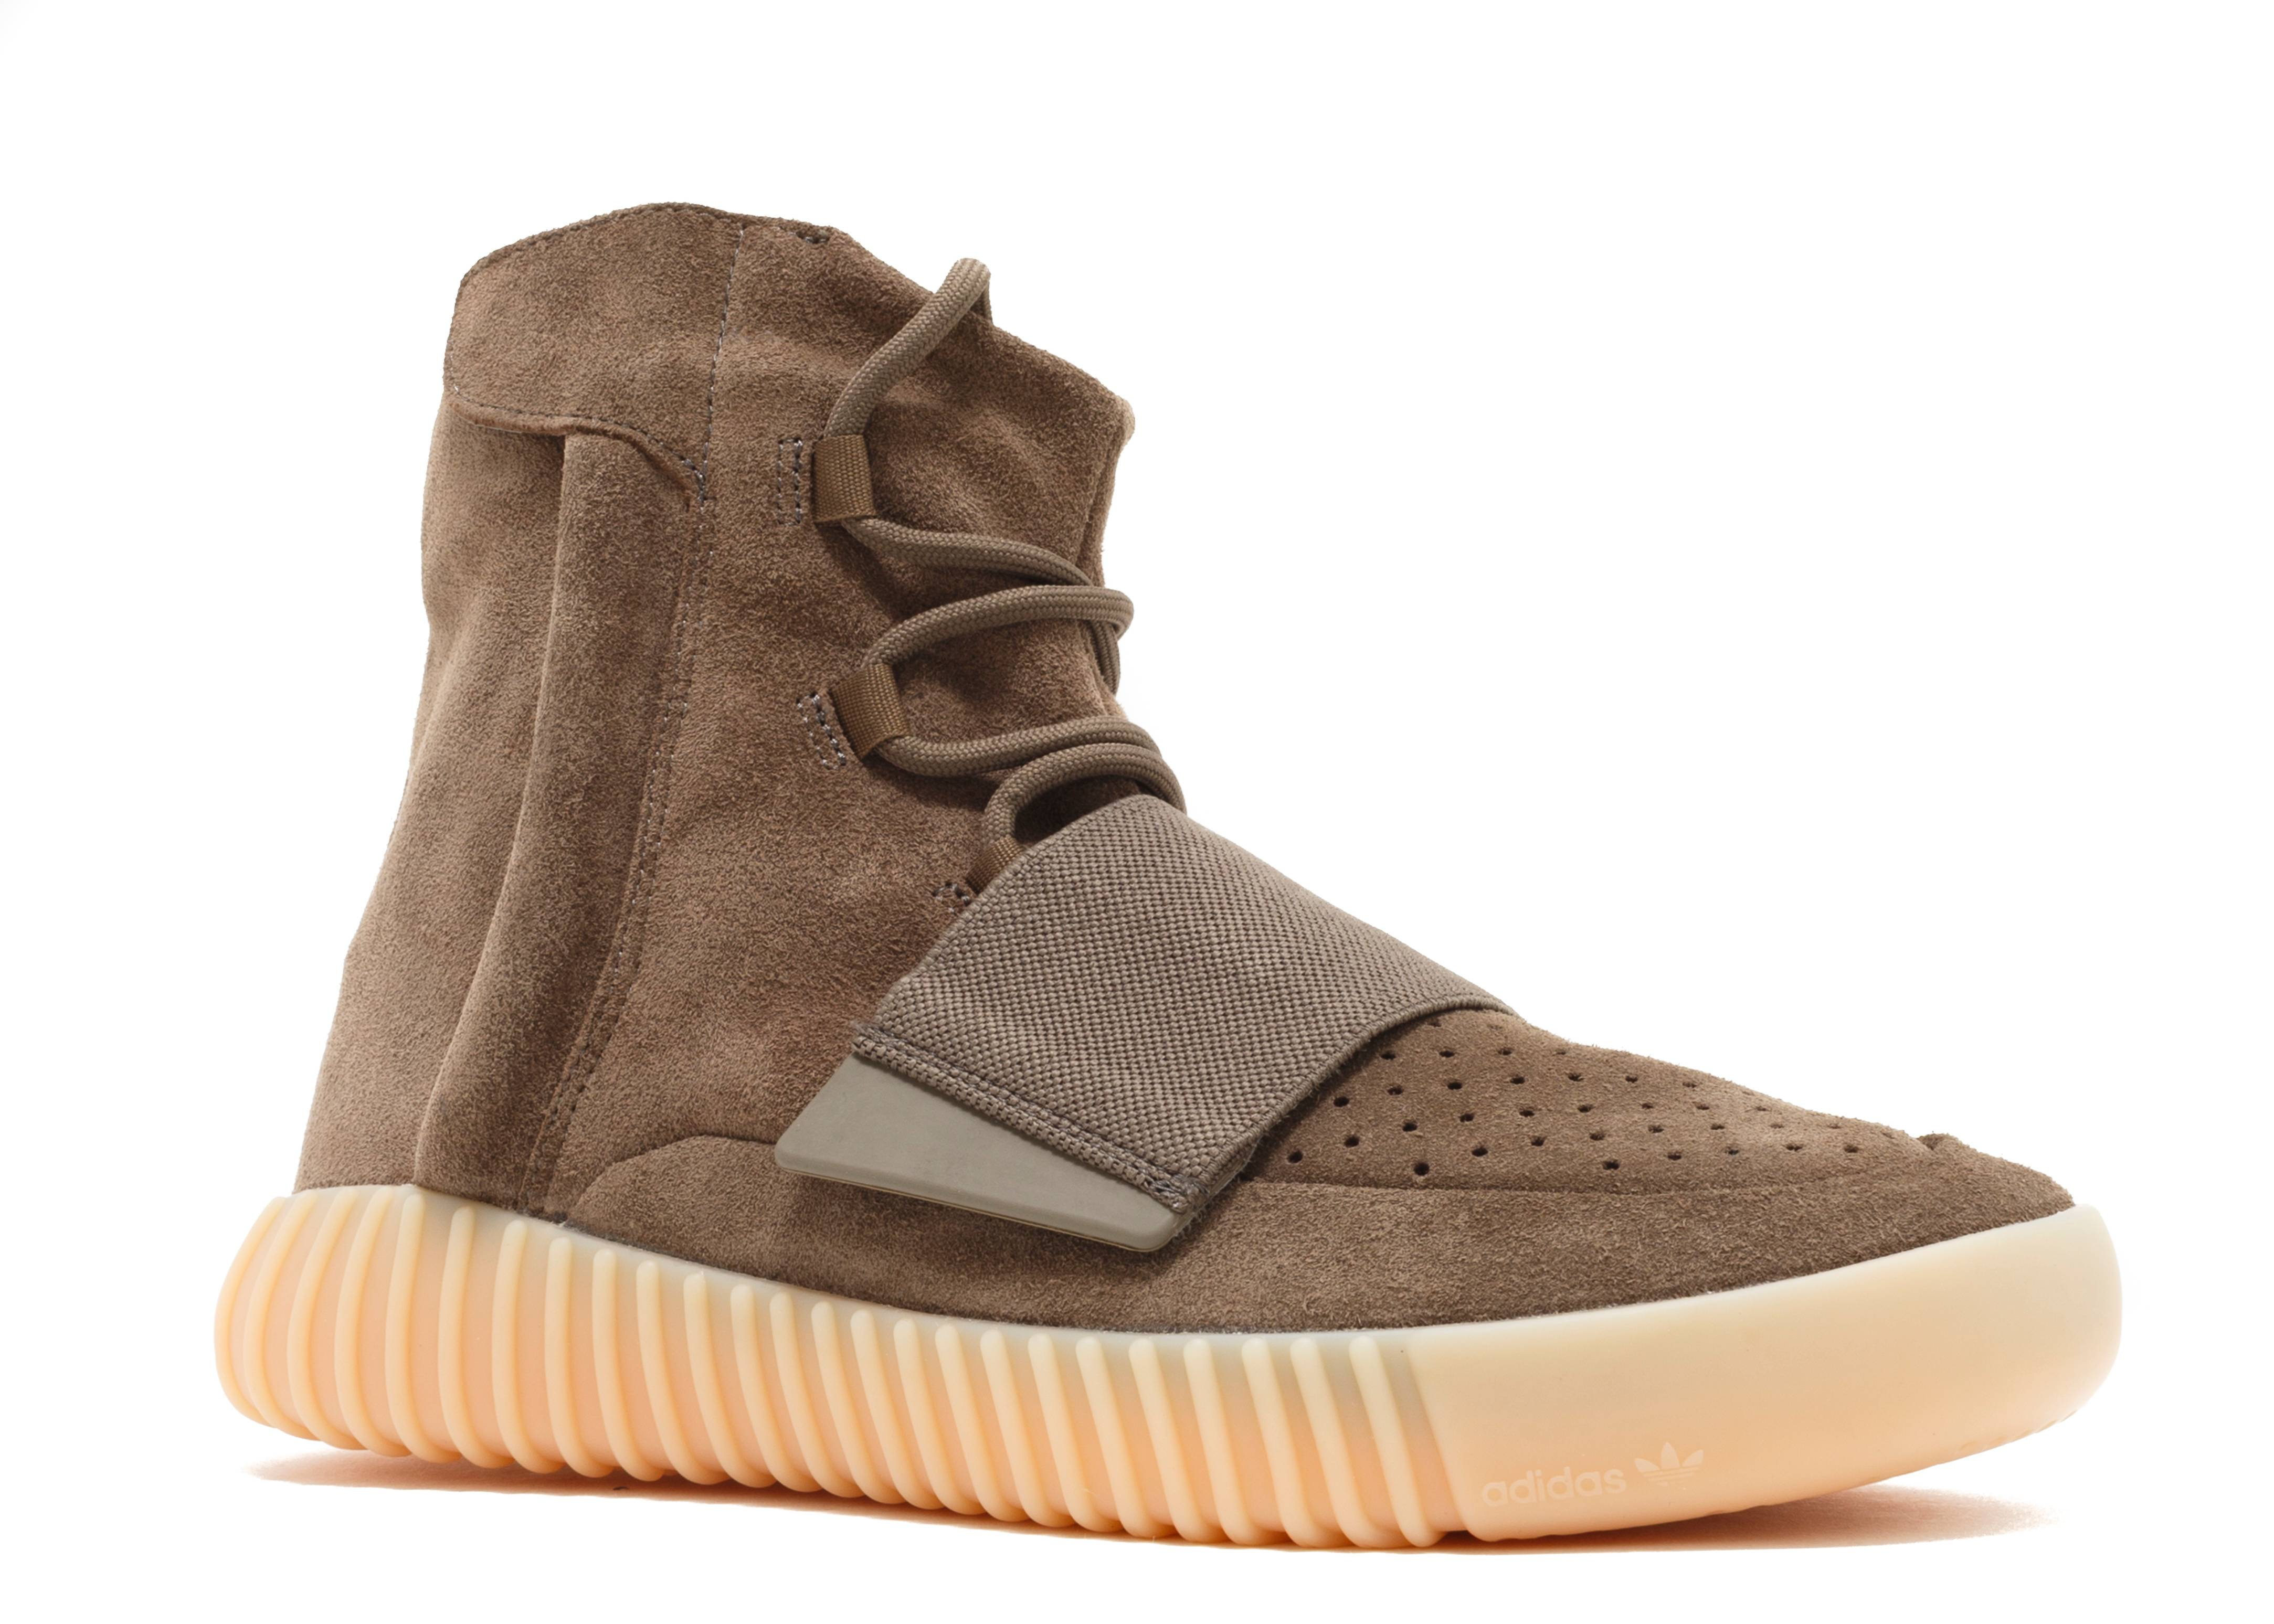 Yeezy Boost 750 >> Yeezy Boost 750 - Adidas - by2456 - lbrown/lbrown/gum3 | Flight Club